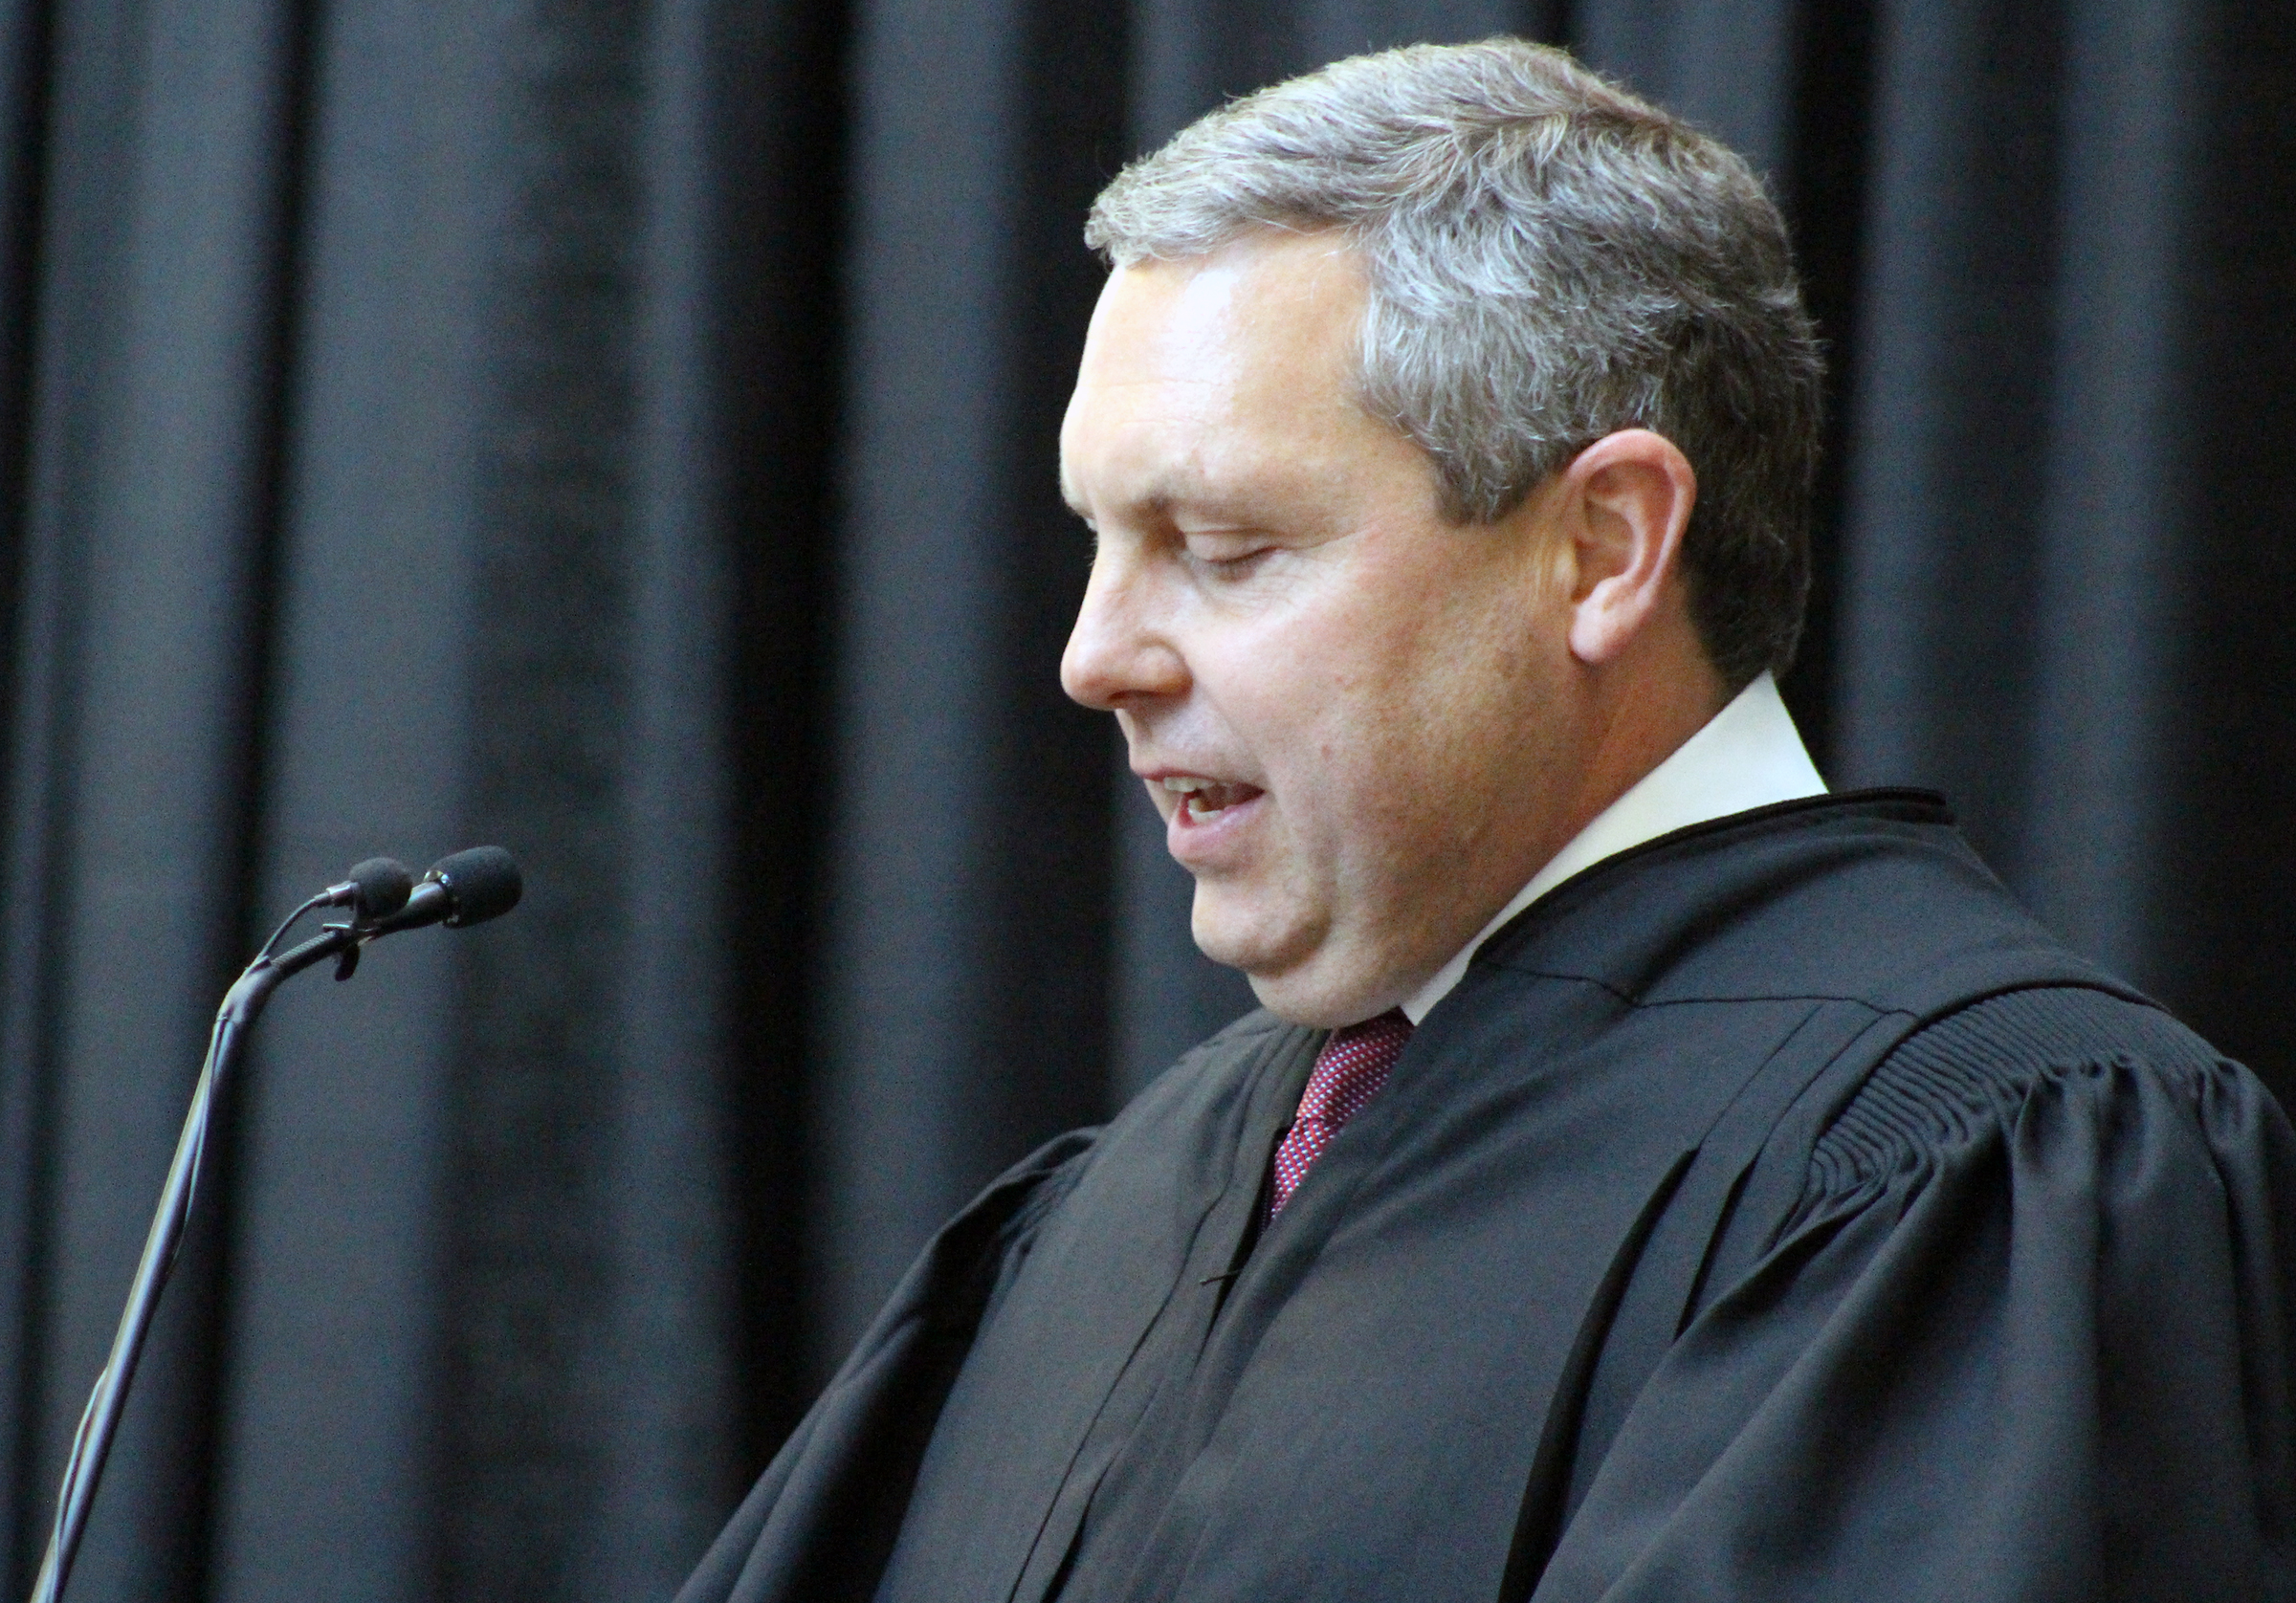 Brian C. Buescher delivers remarks during his investiture ceremony at the Hruska Federal Courthouse on Friday, Nov. 15, 2019. (Photo by Scott Stewart)